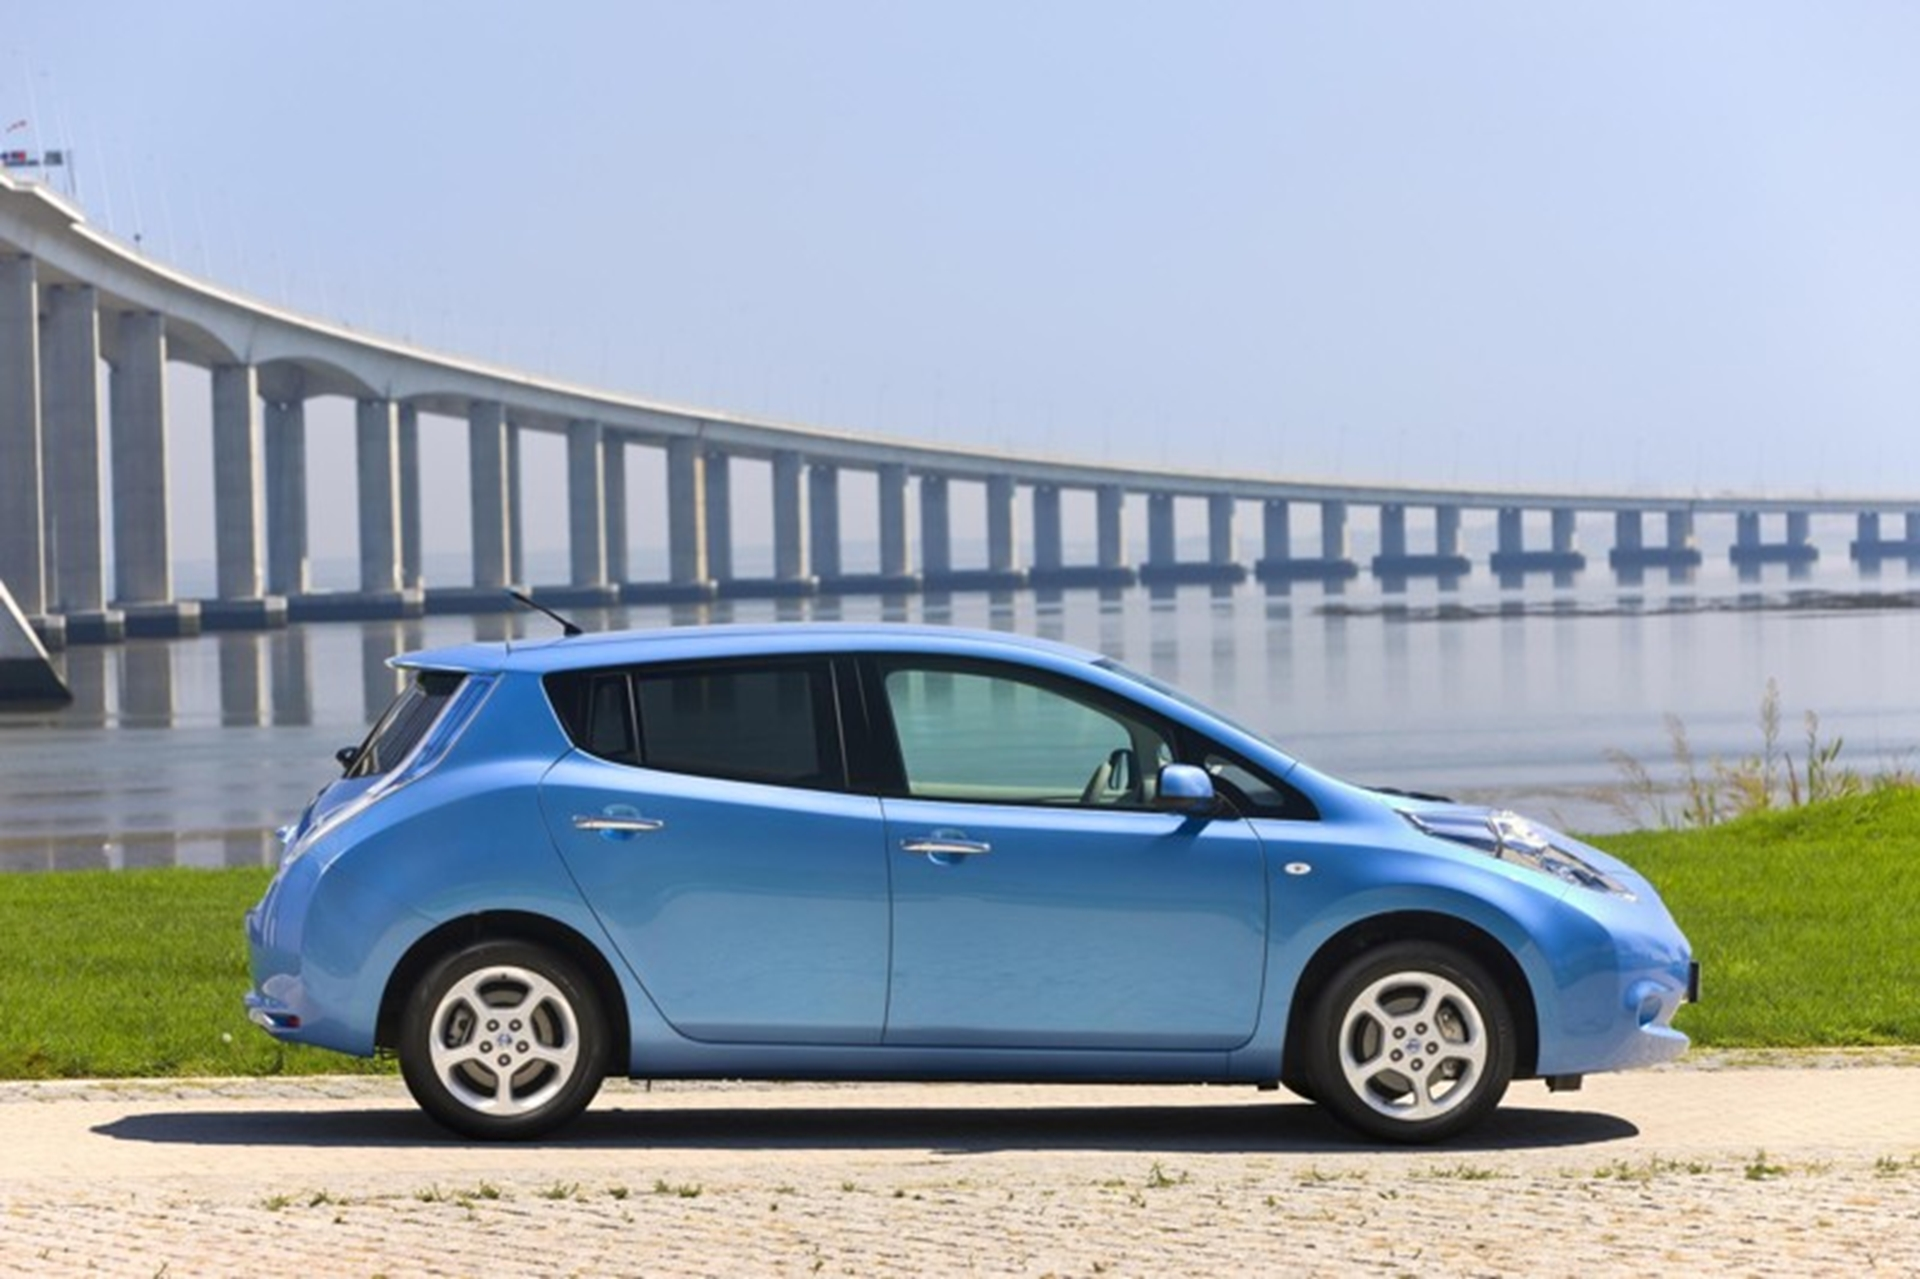 Nissan Lead Car of the Year